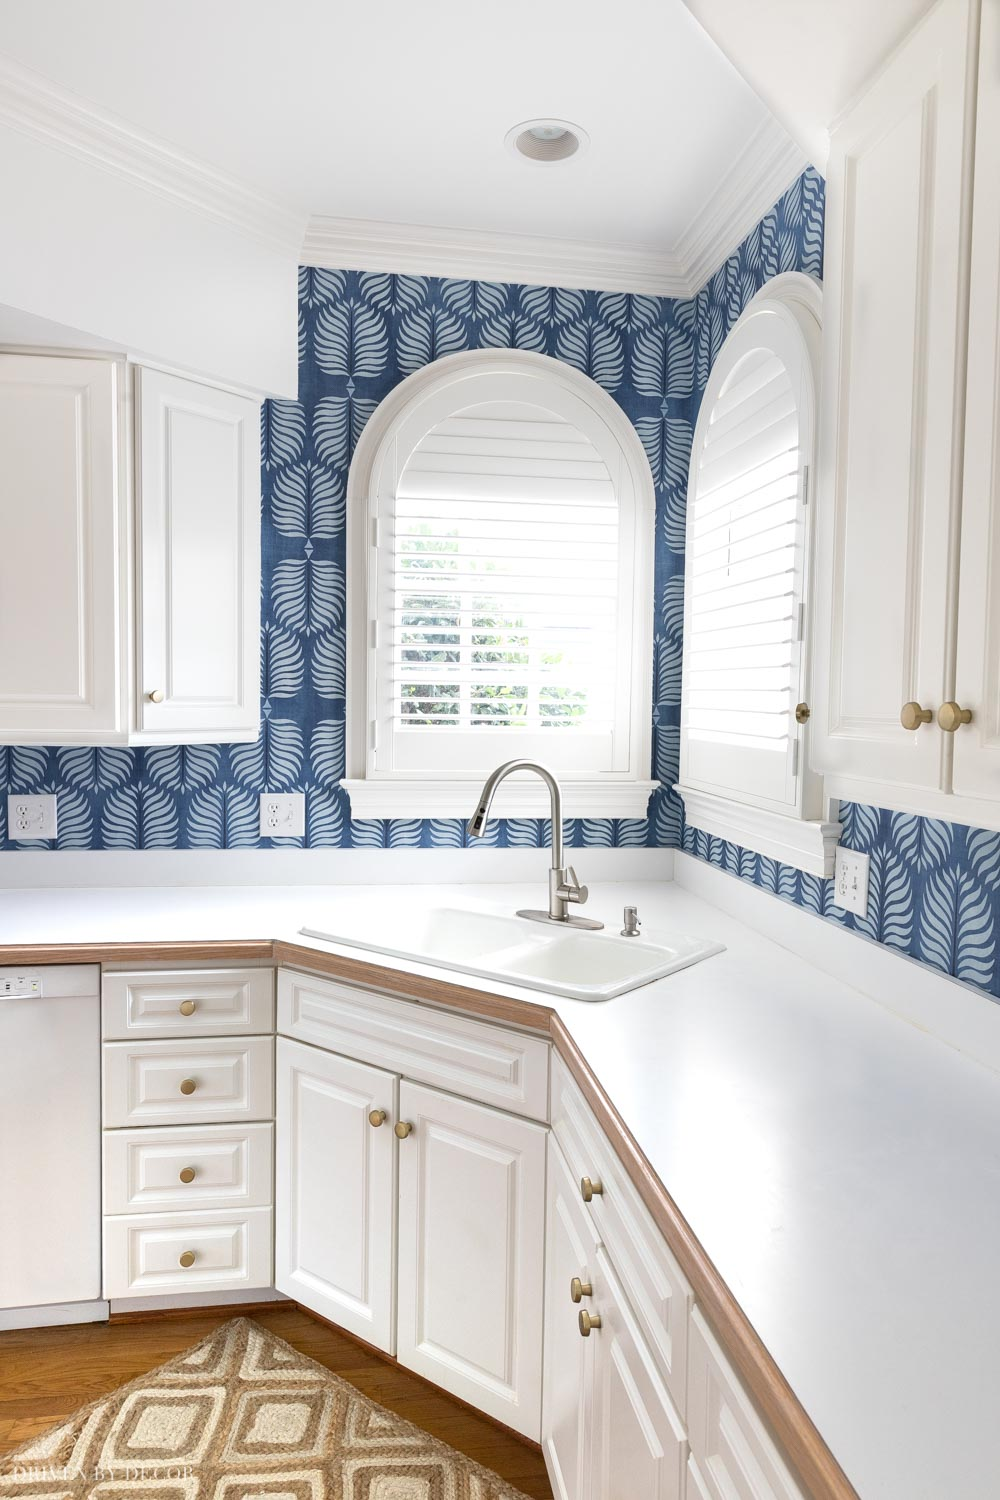 Adding a wallpaper backsplash to this kitchen made the white cabinets pop!